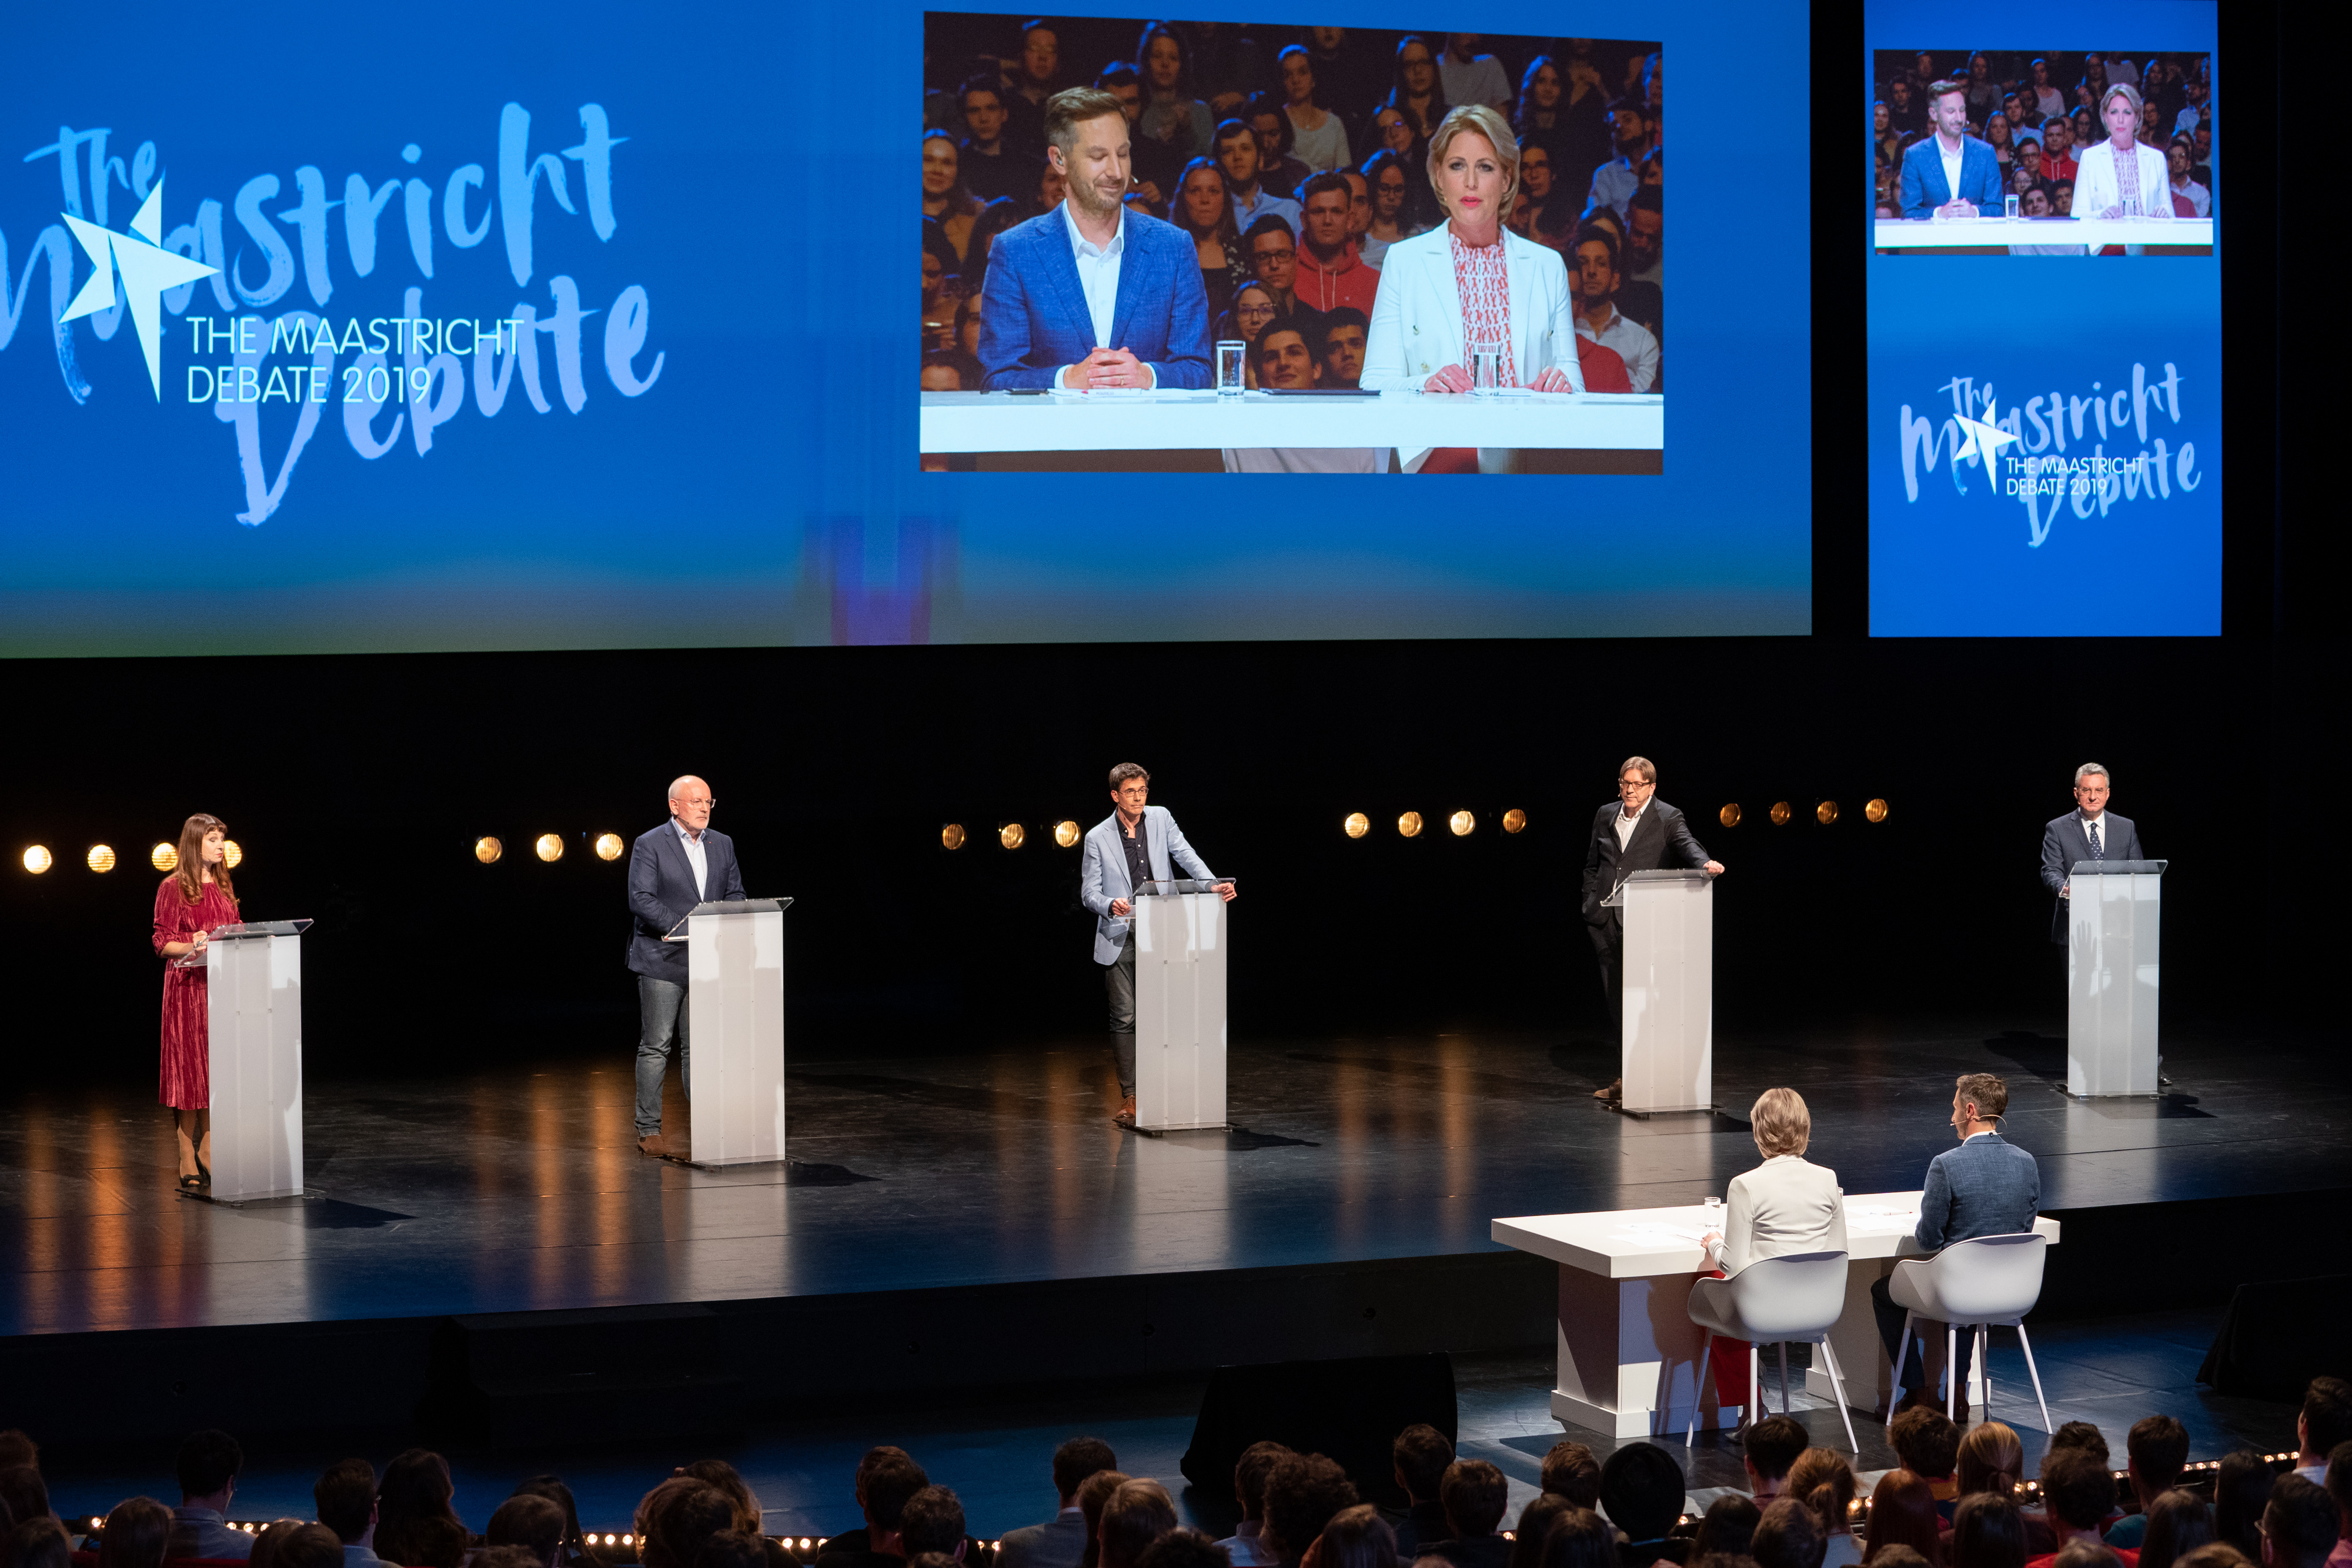 The Maastricht Debate and Live Viewing Party